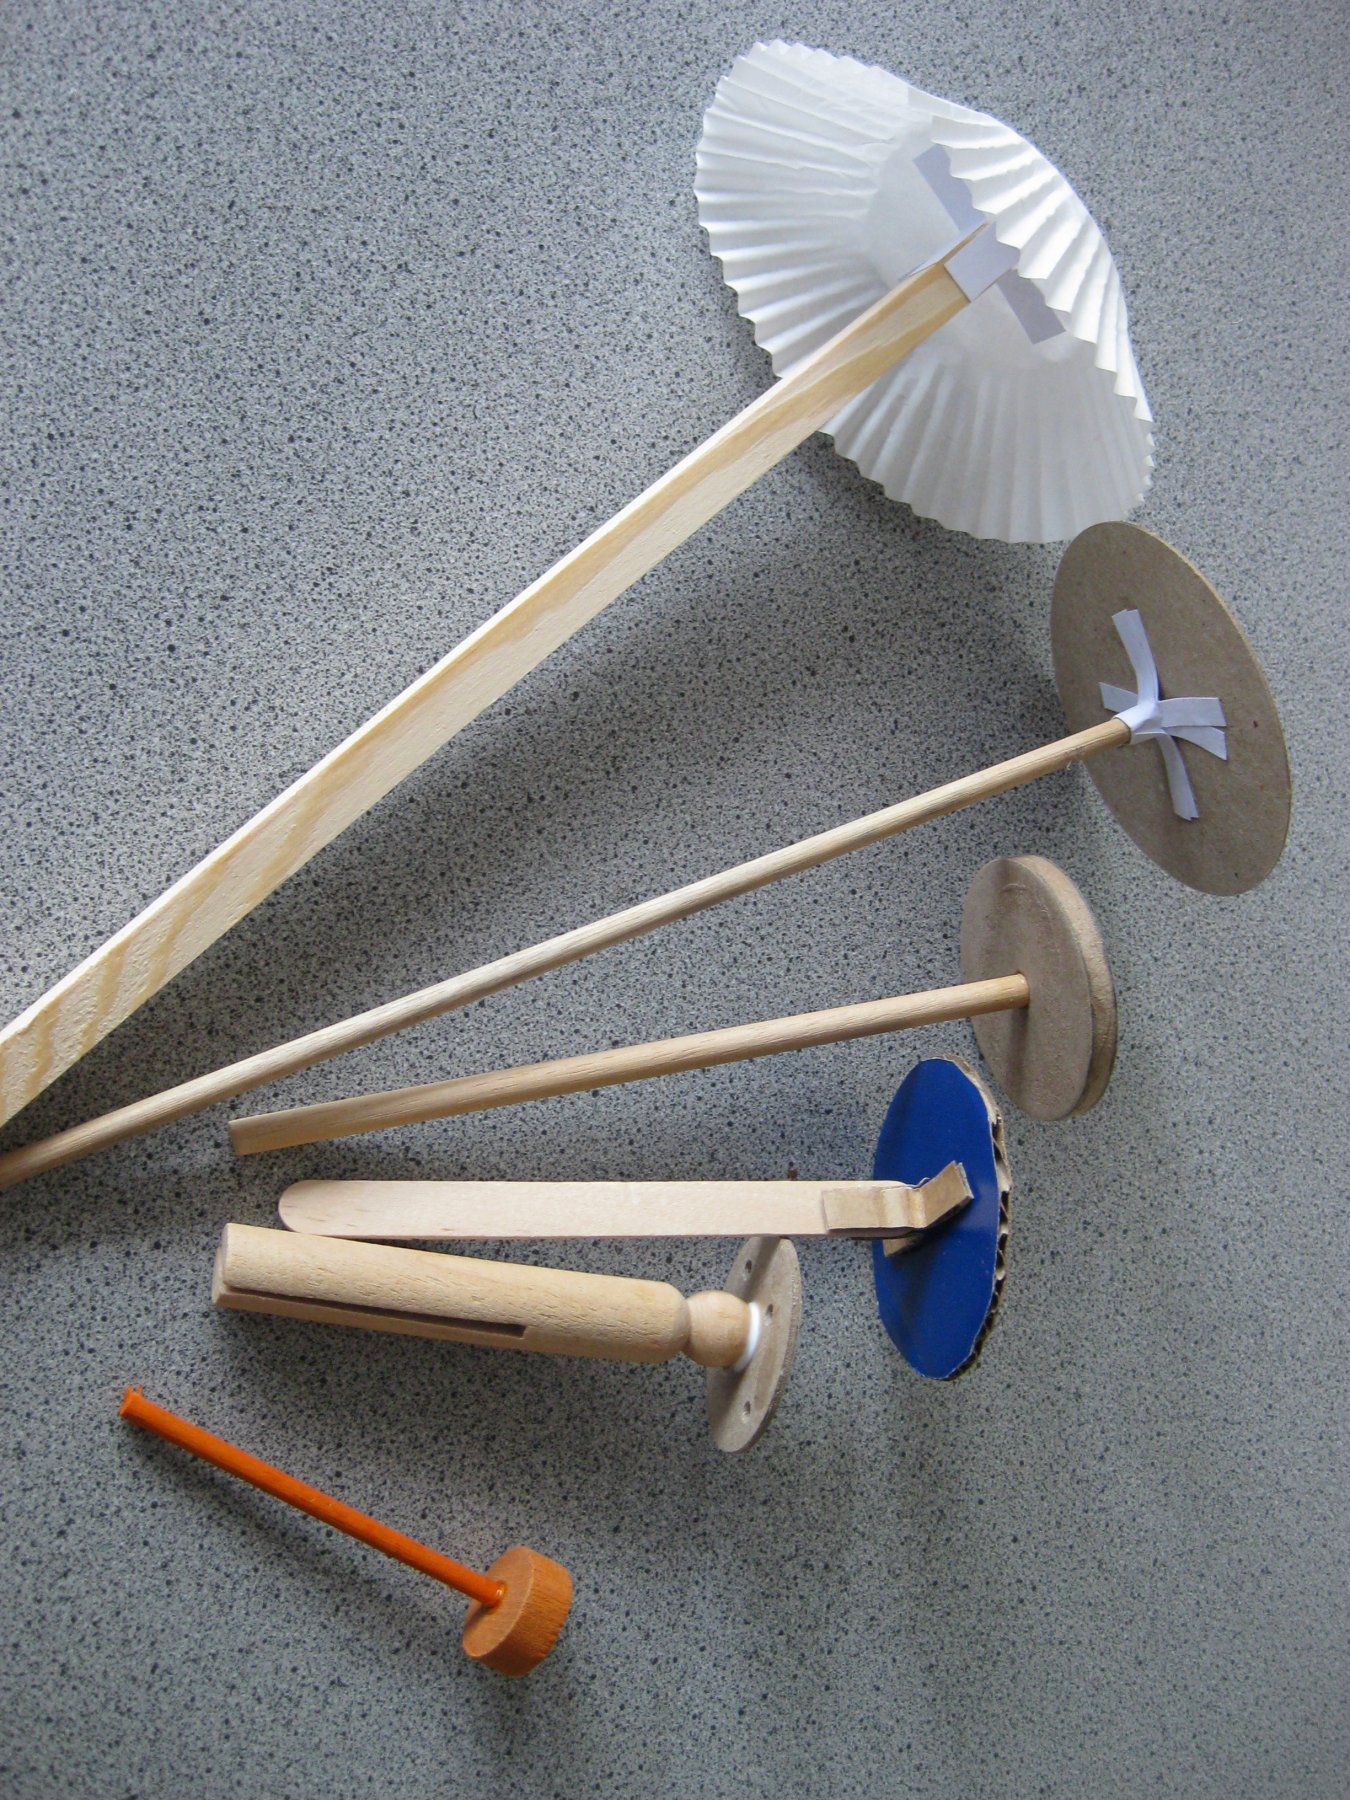 examples of finished sticks